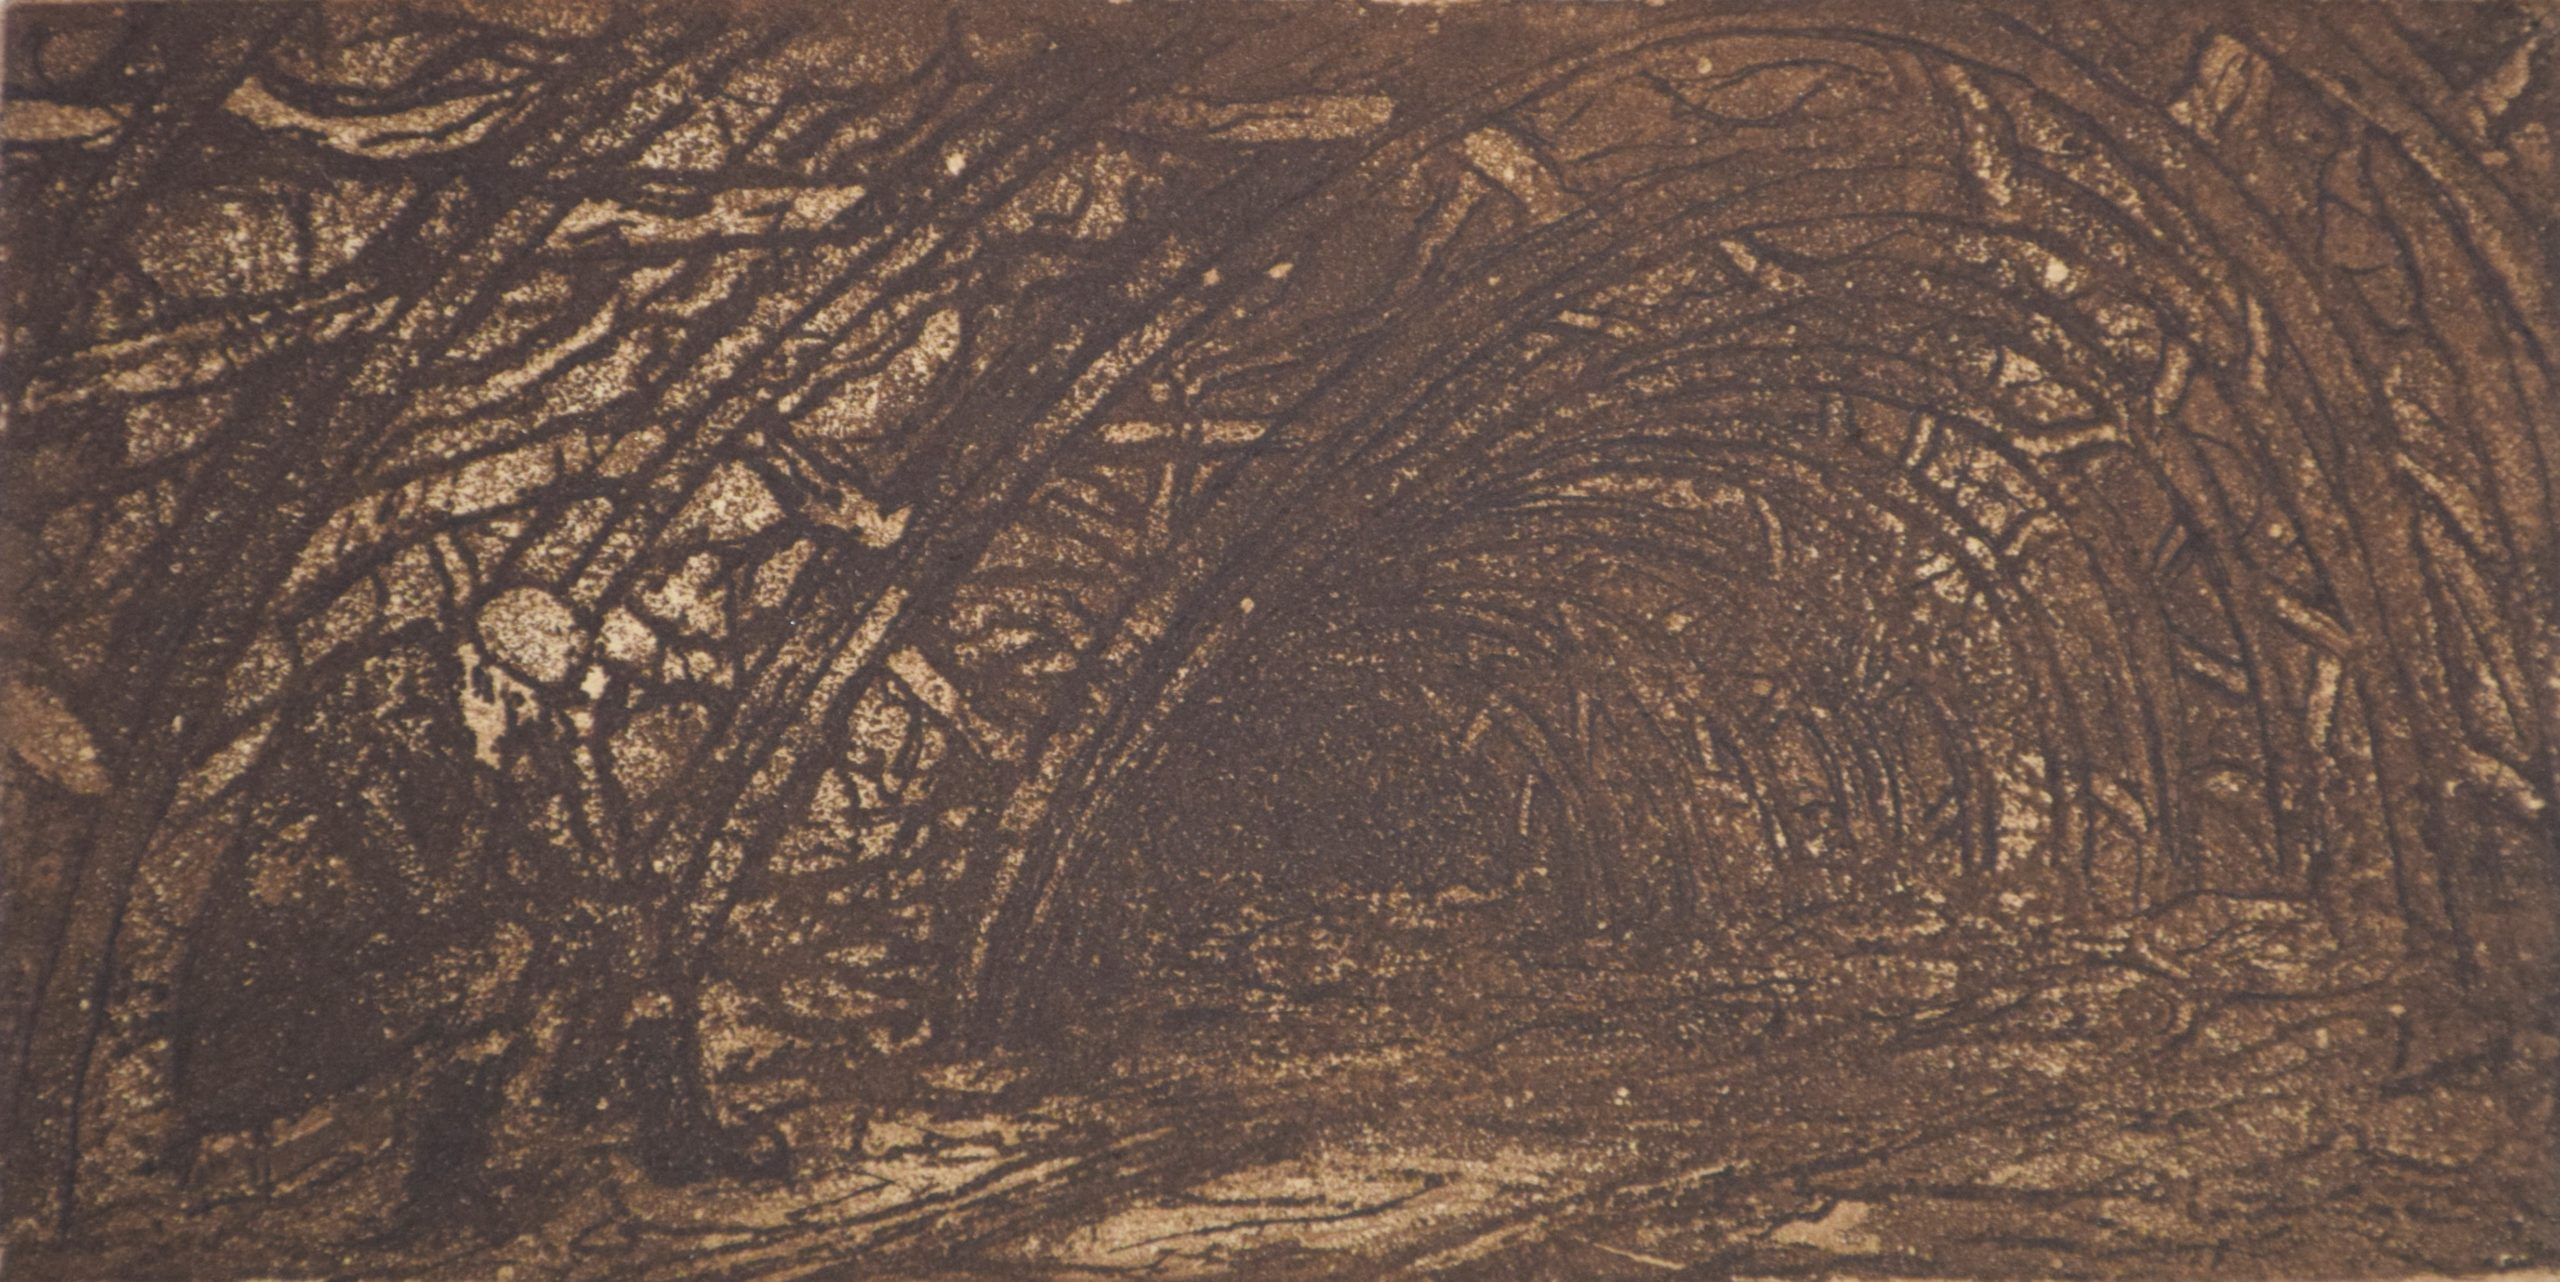 Miner in the return by Tom McGuinness, Etching